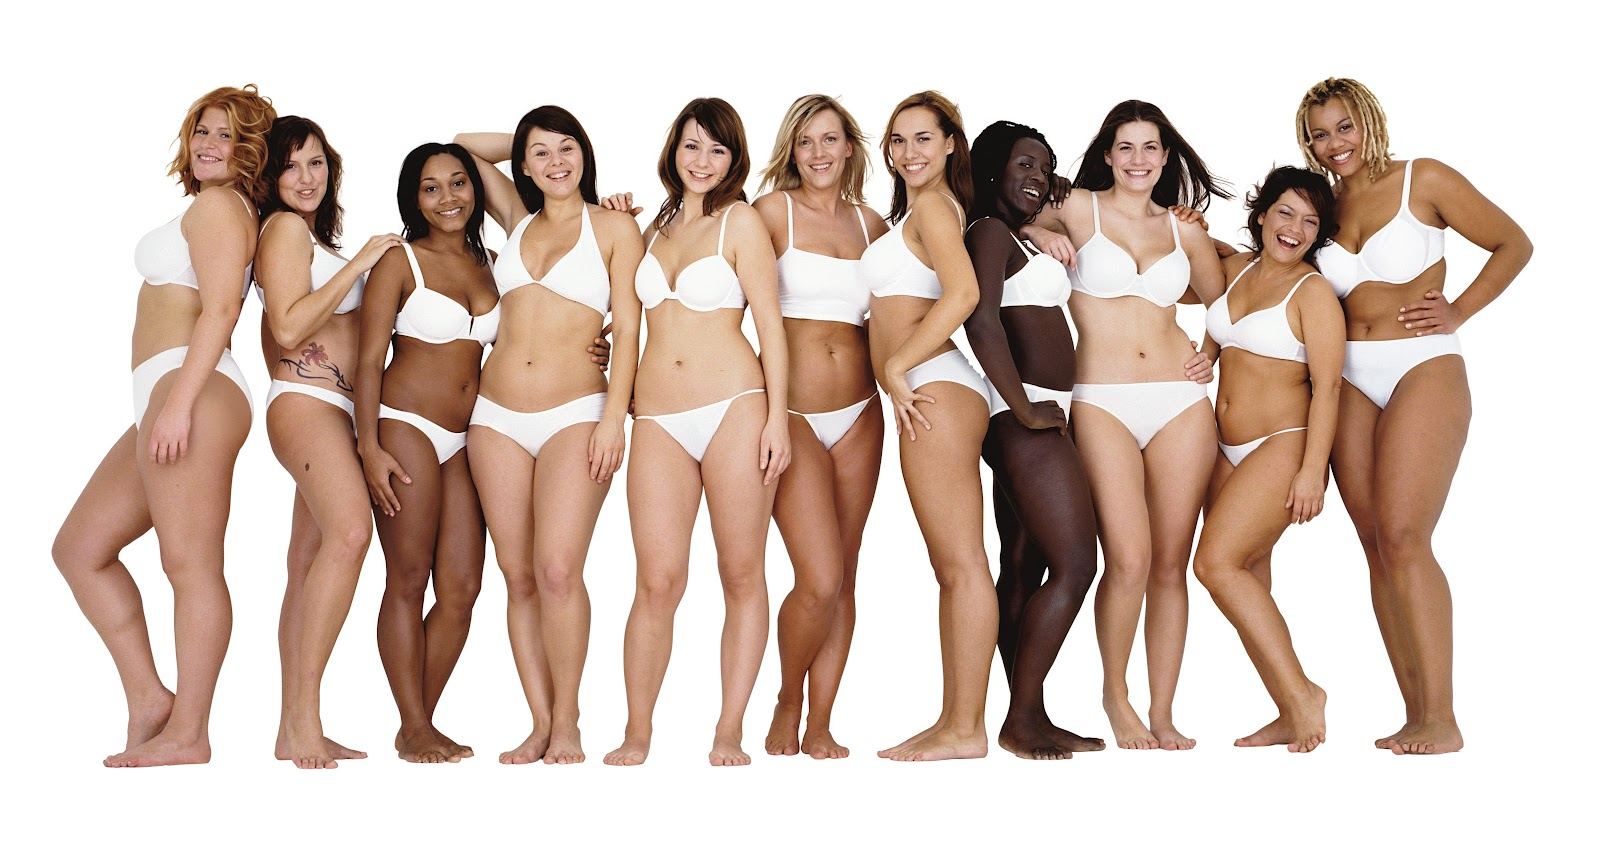 Body Image: Time To Stop The Cycle